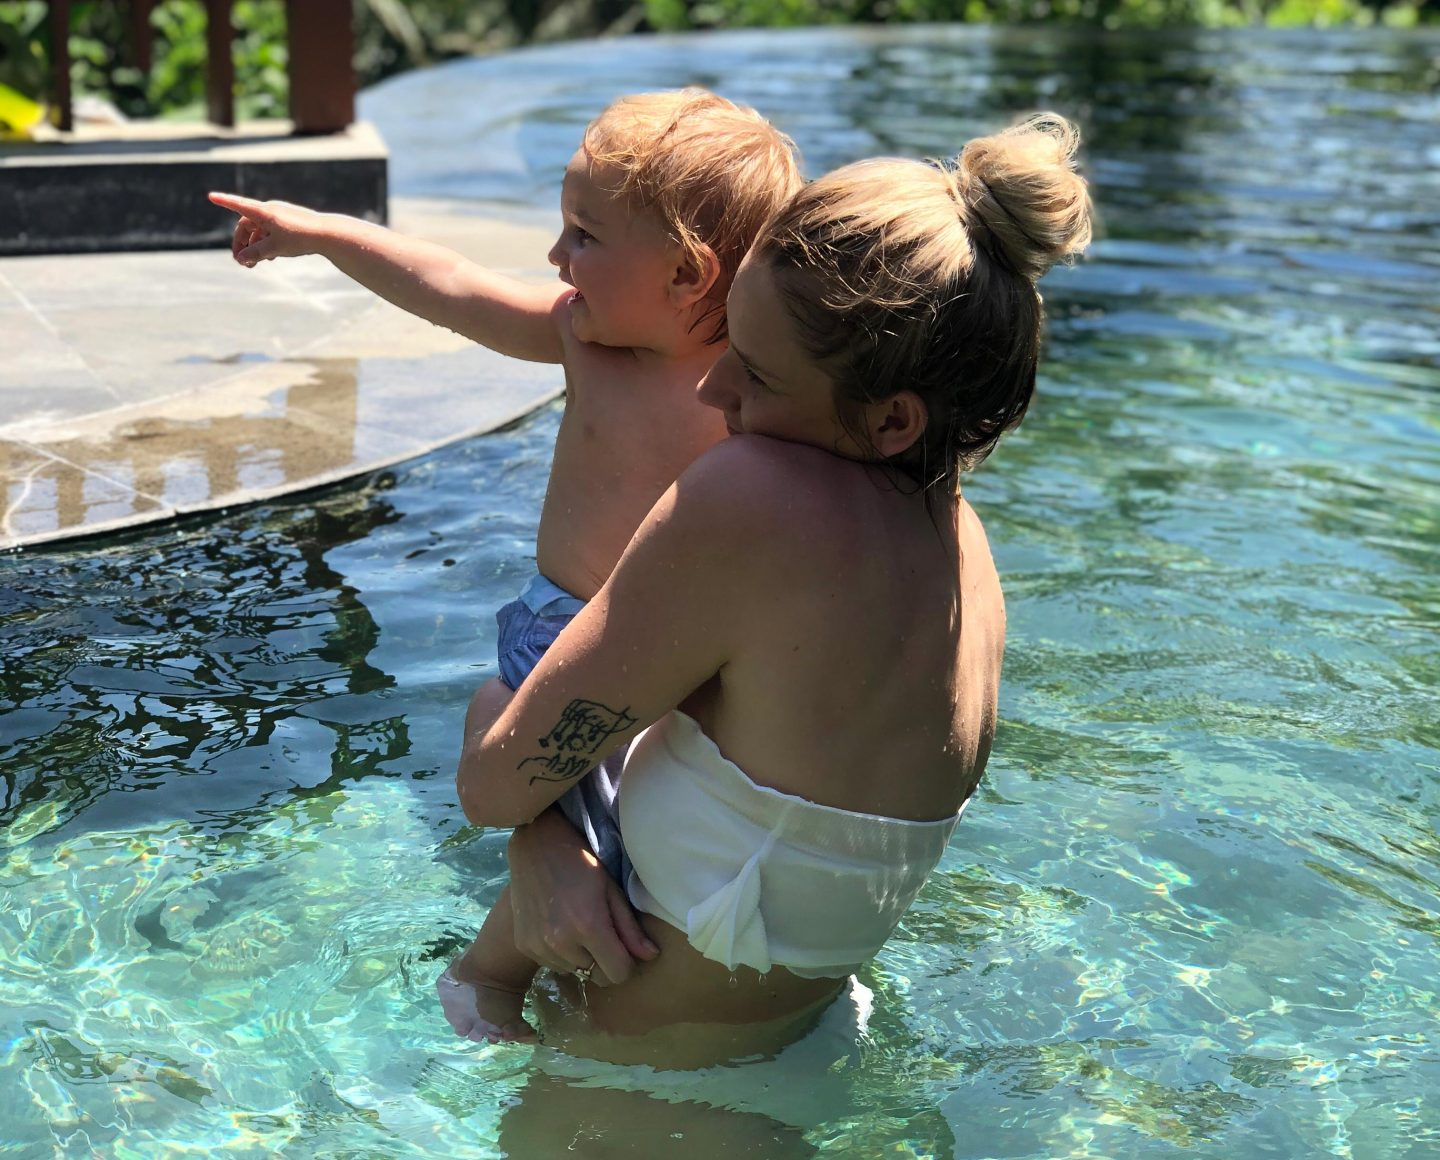 Ollie & Paige in the Pool - Bali with a toddler - Live life and roam